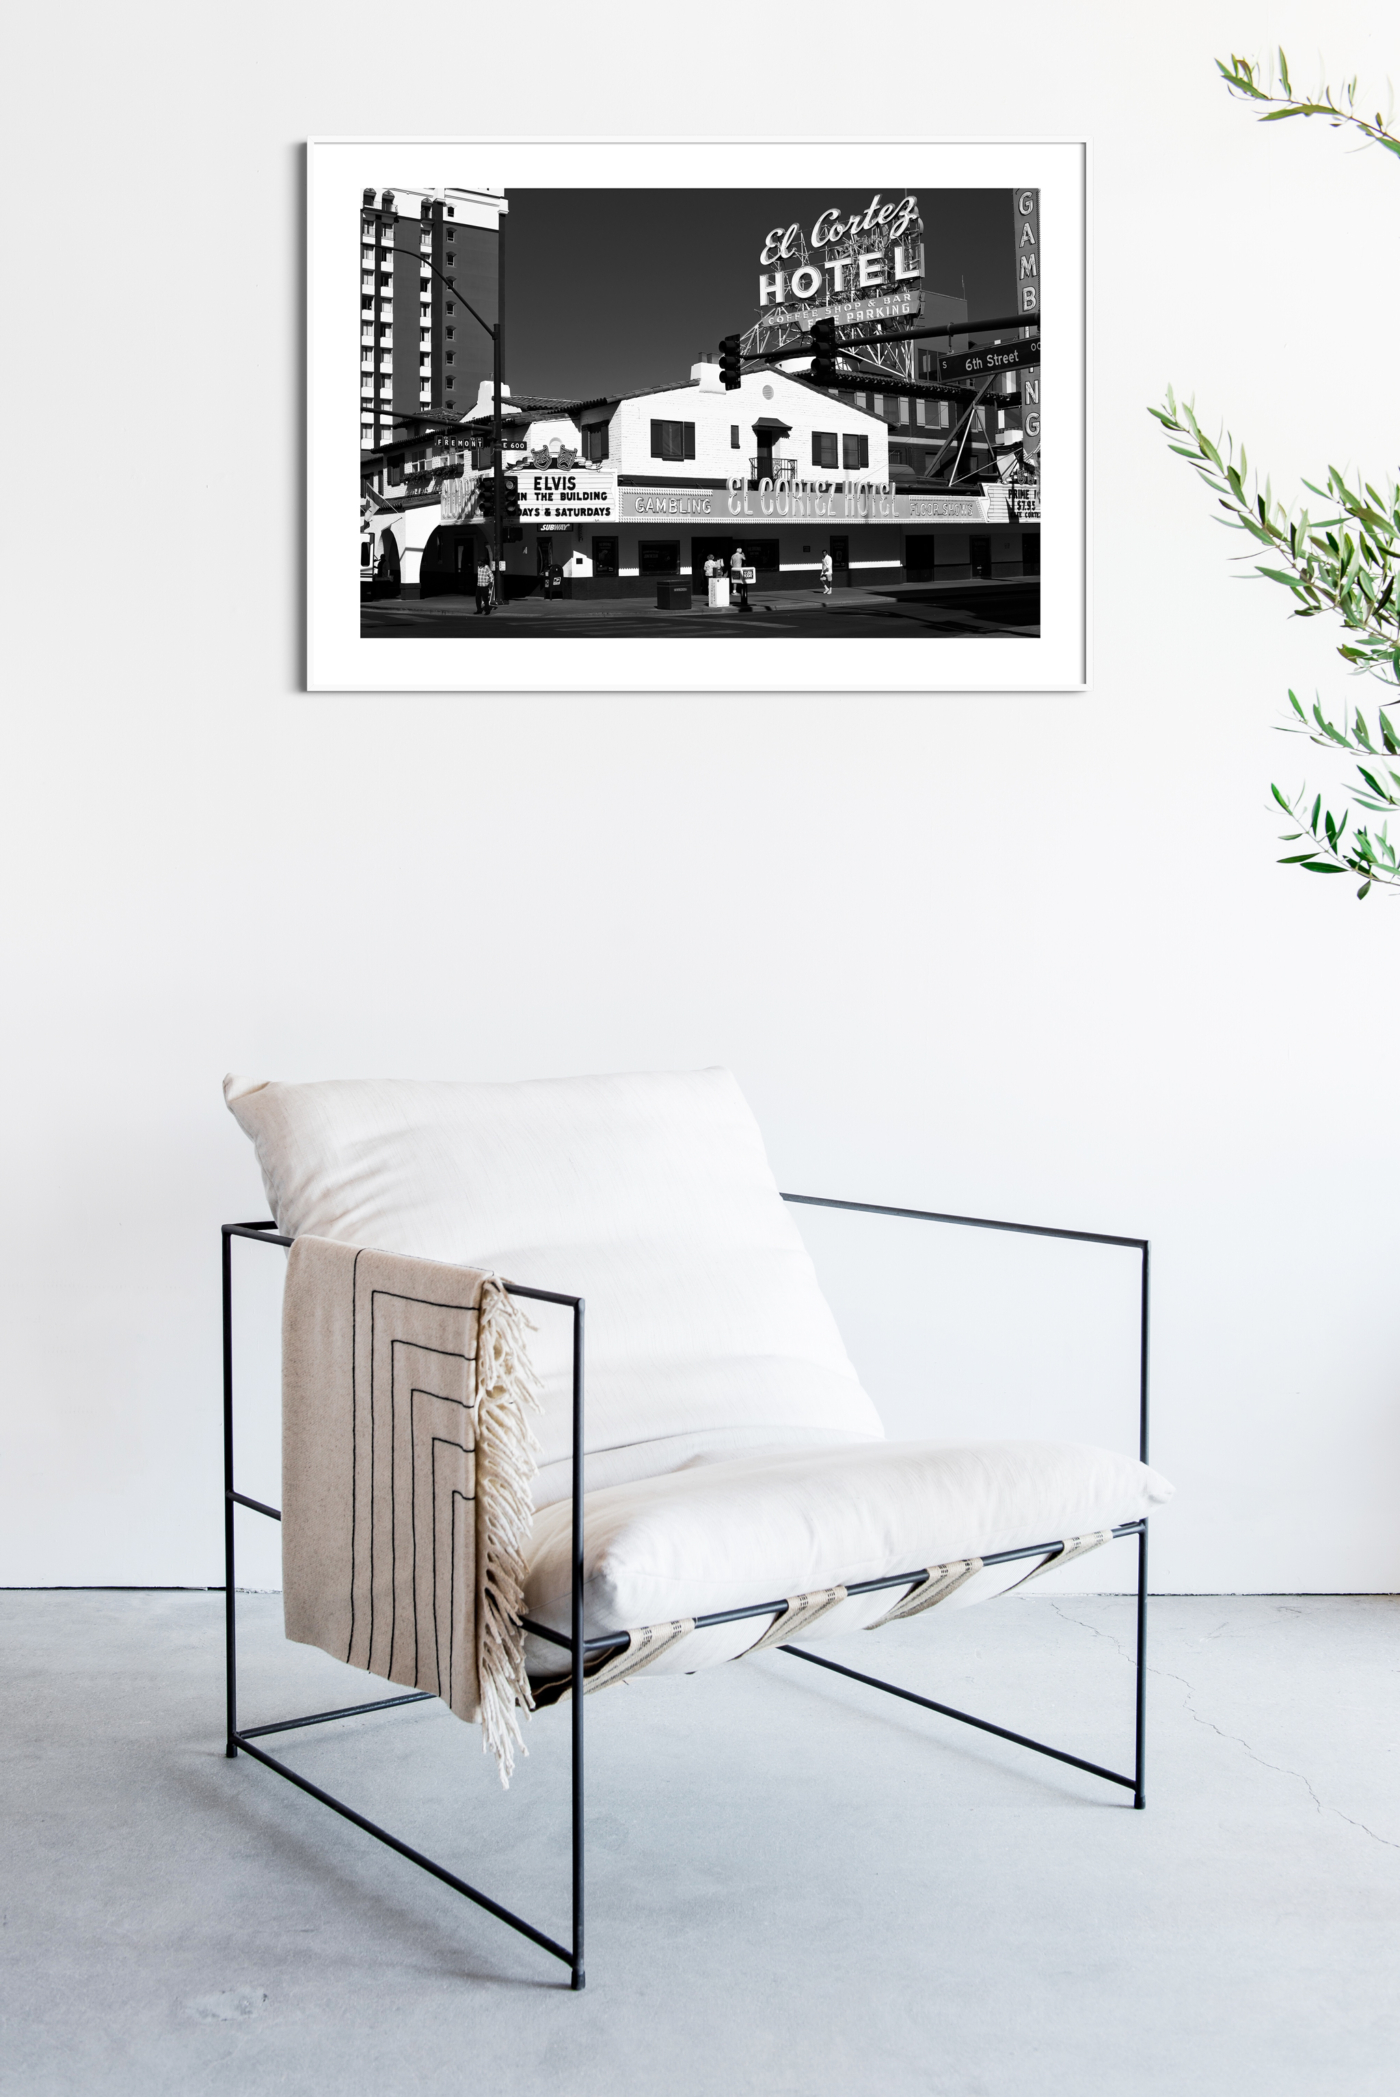 El Cortez Hotel, Las Vegas - black and white photography, print with border in white frame on the wall